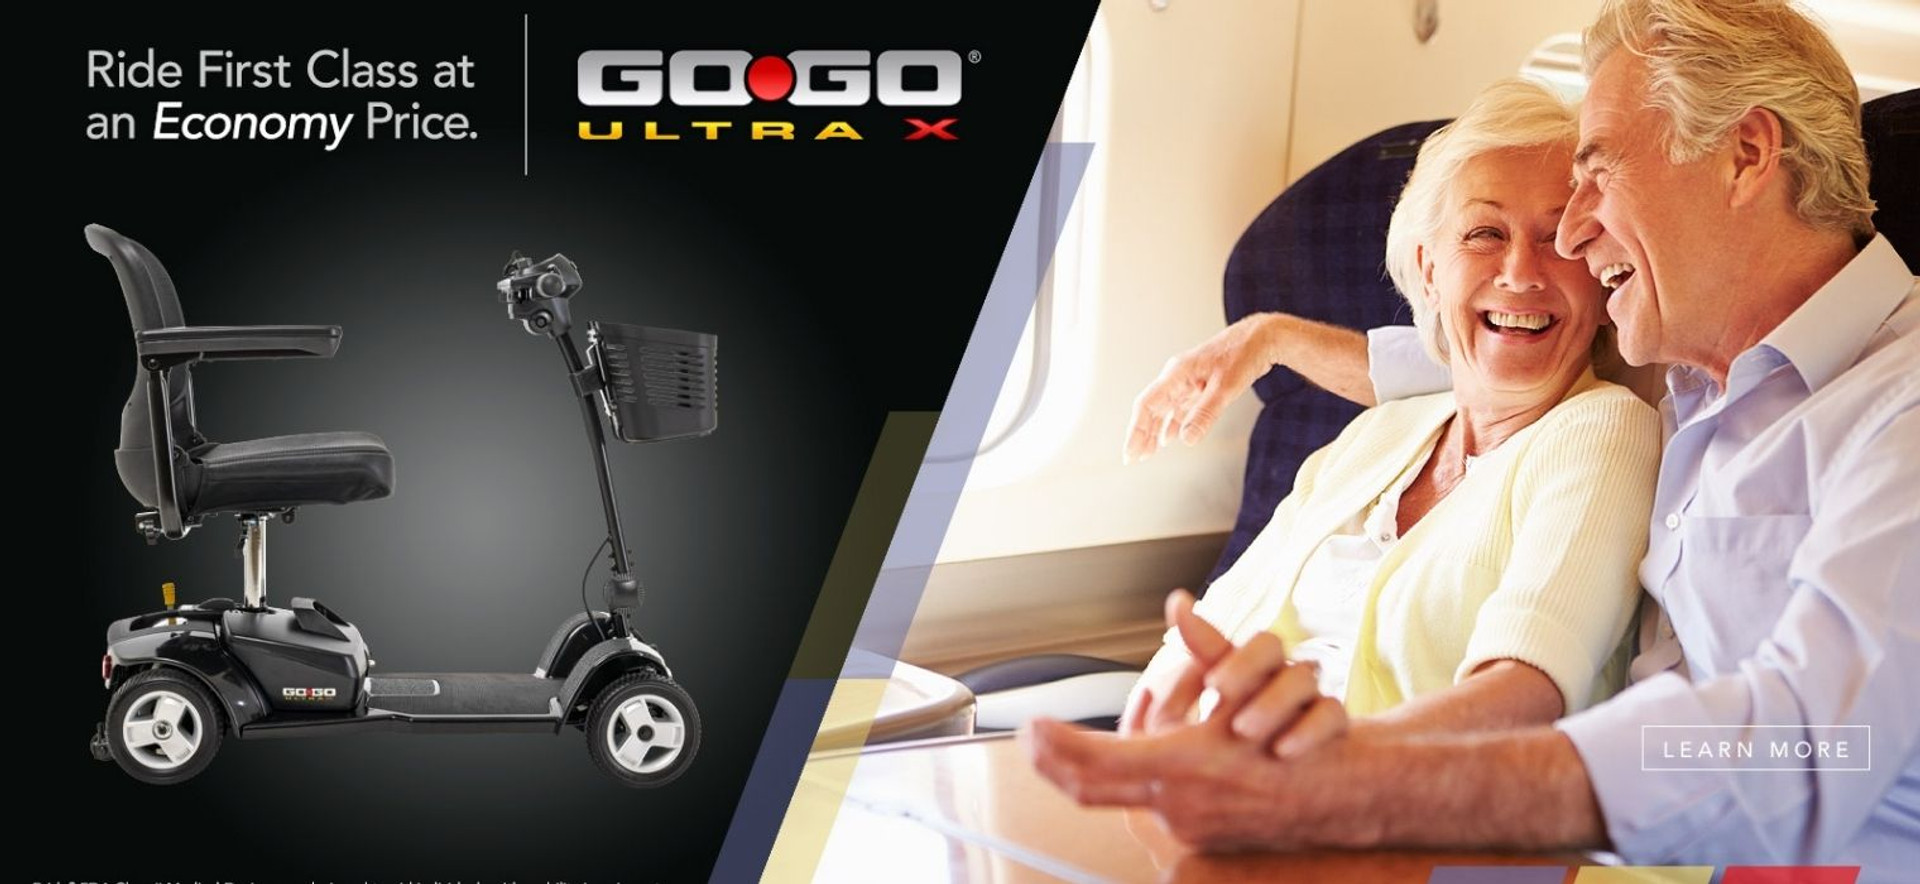 go go ultra X scooter